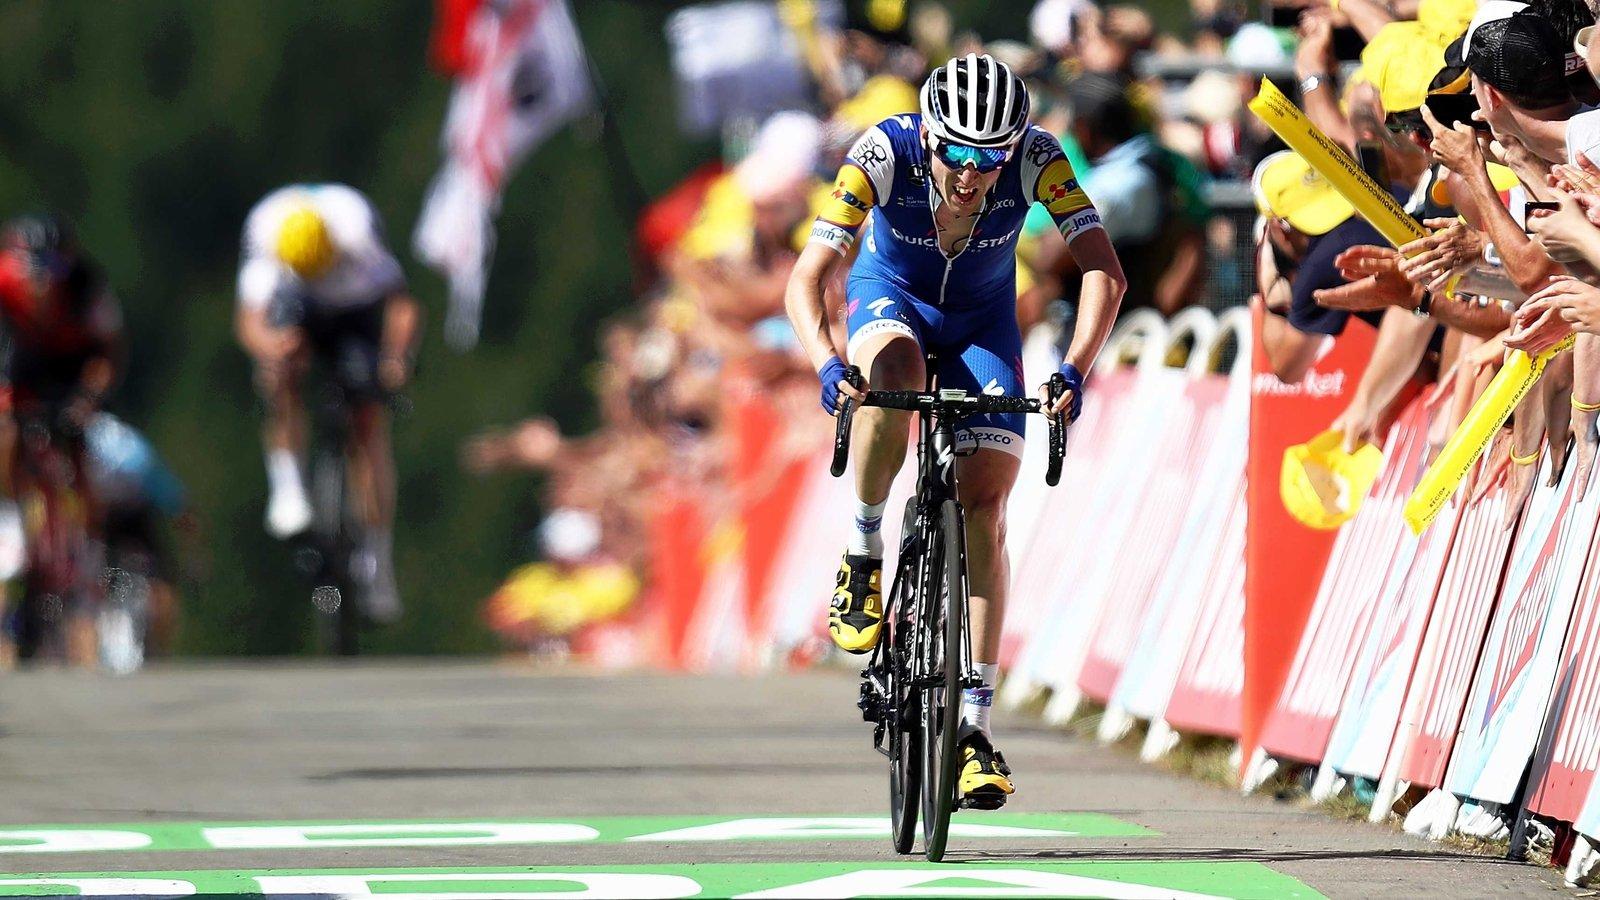 Image - Dan Martin is likely to target stage victories than the general classification